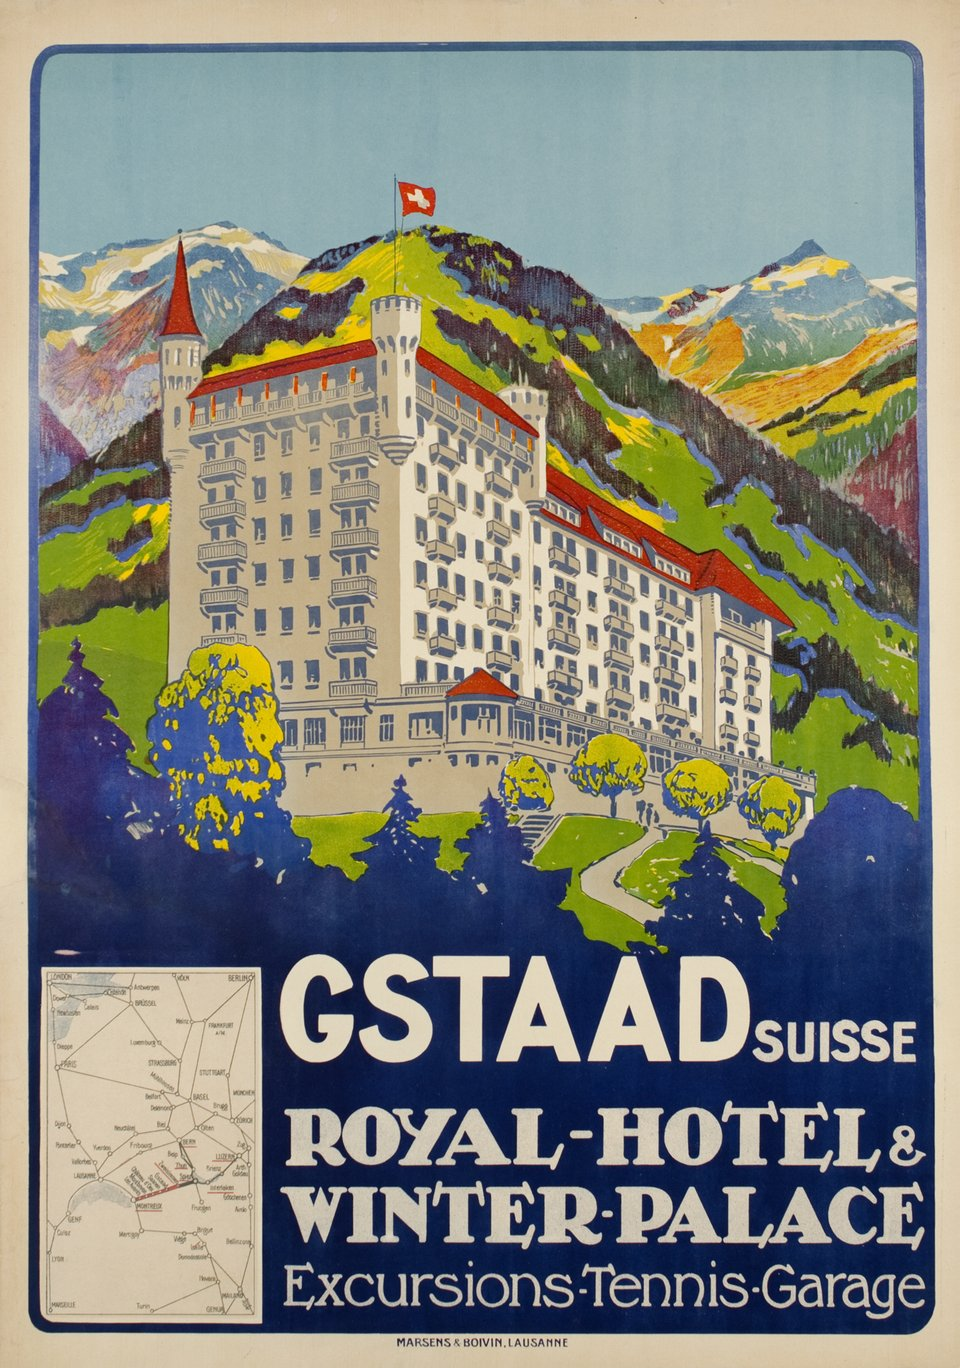 Gstaad Suisse - Royal-Hôtel & Winter Palace, Excursion-Tennis-Garage – Vintage poster –  ANONYME, Carlo PELLEGRINI – 1913